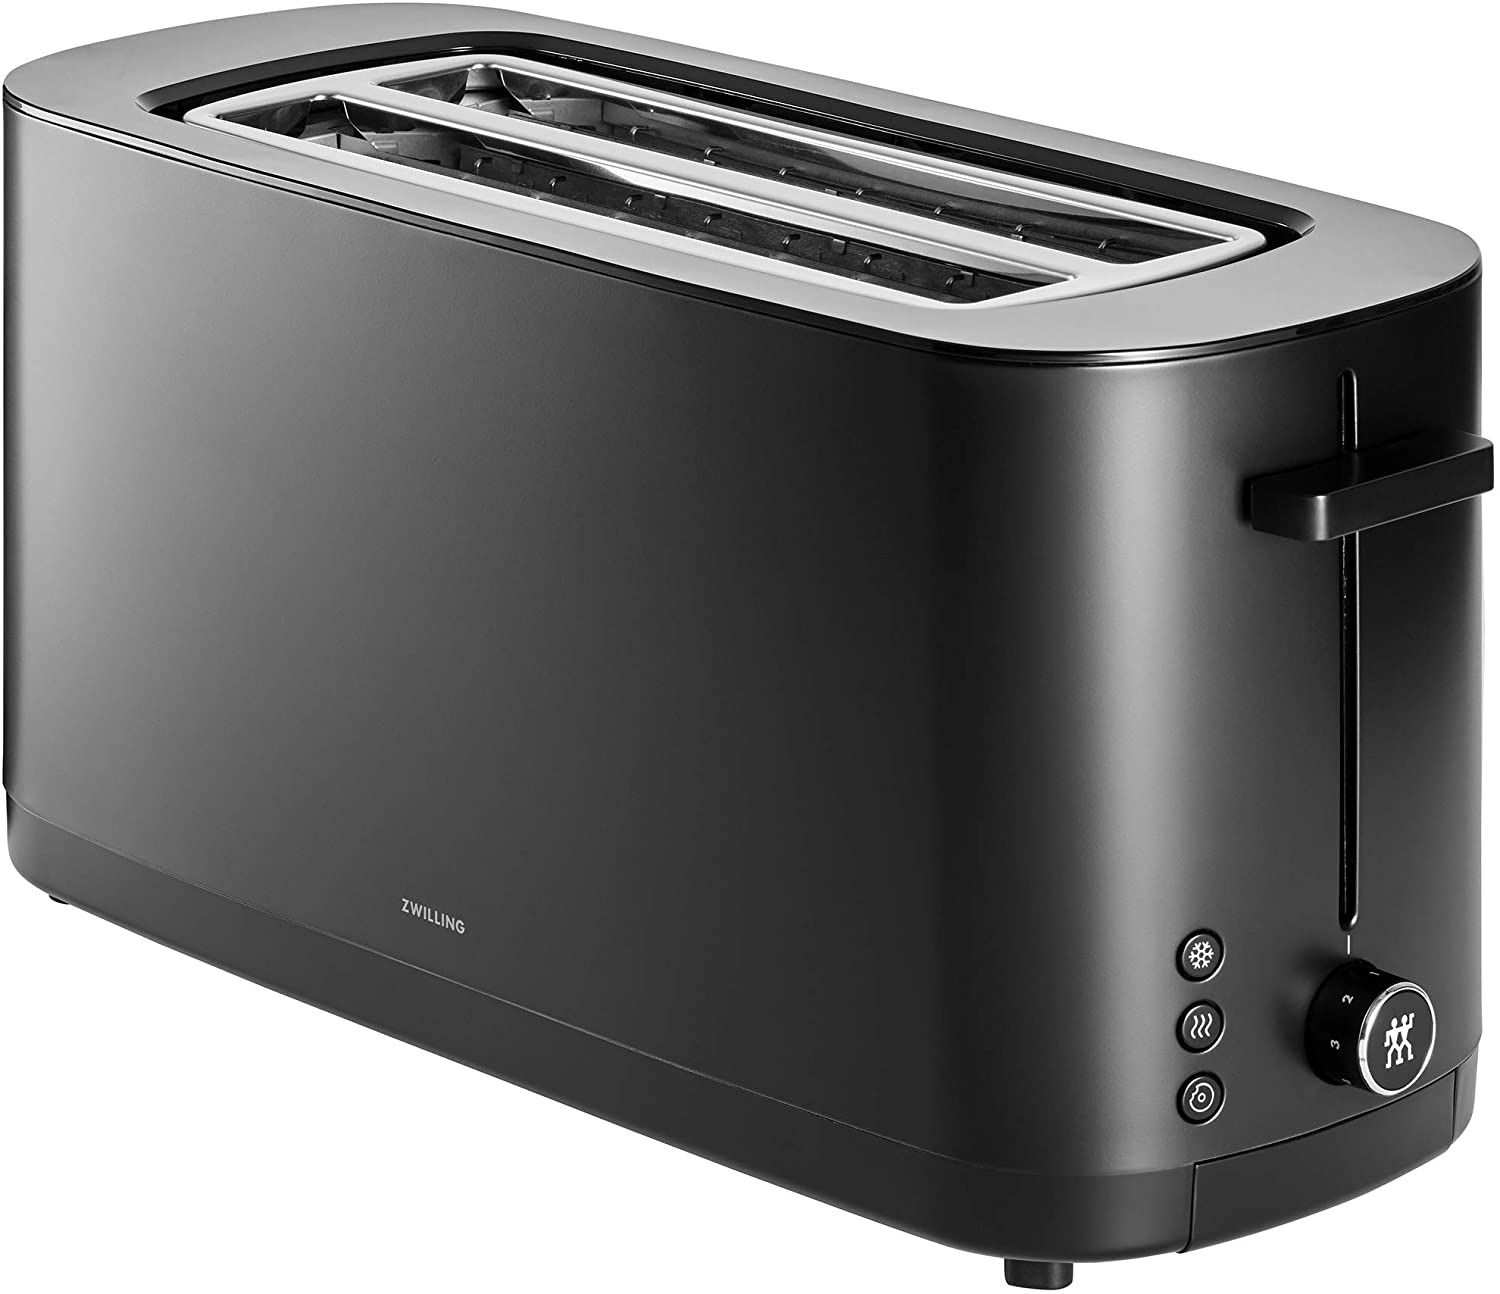 Zwilling Enfinigy 2 Long Slot Toaster, 4 Slices with Extra Wide 1.5